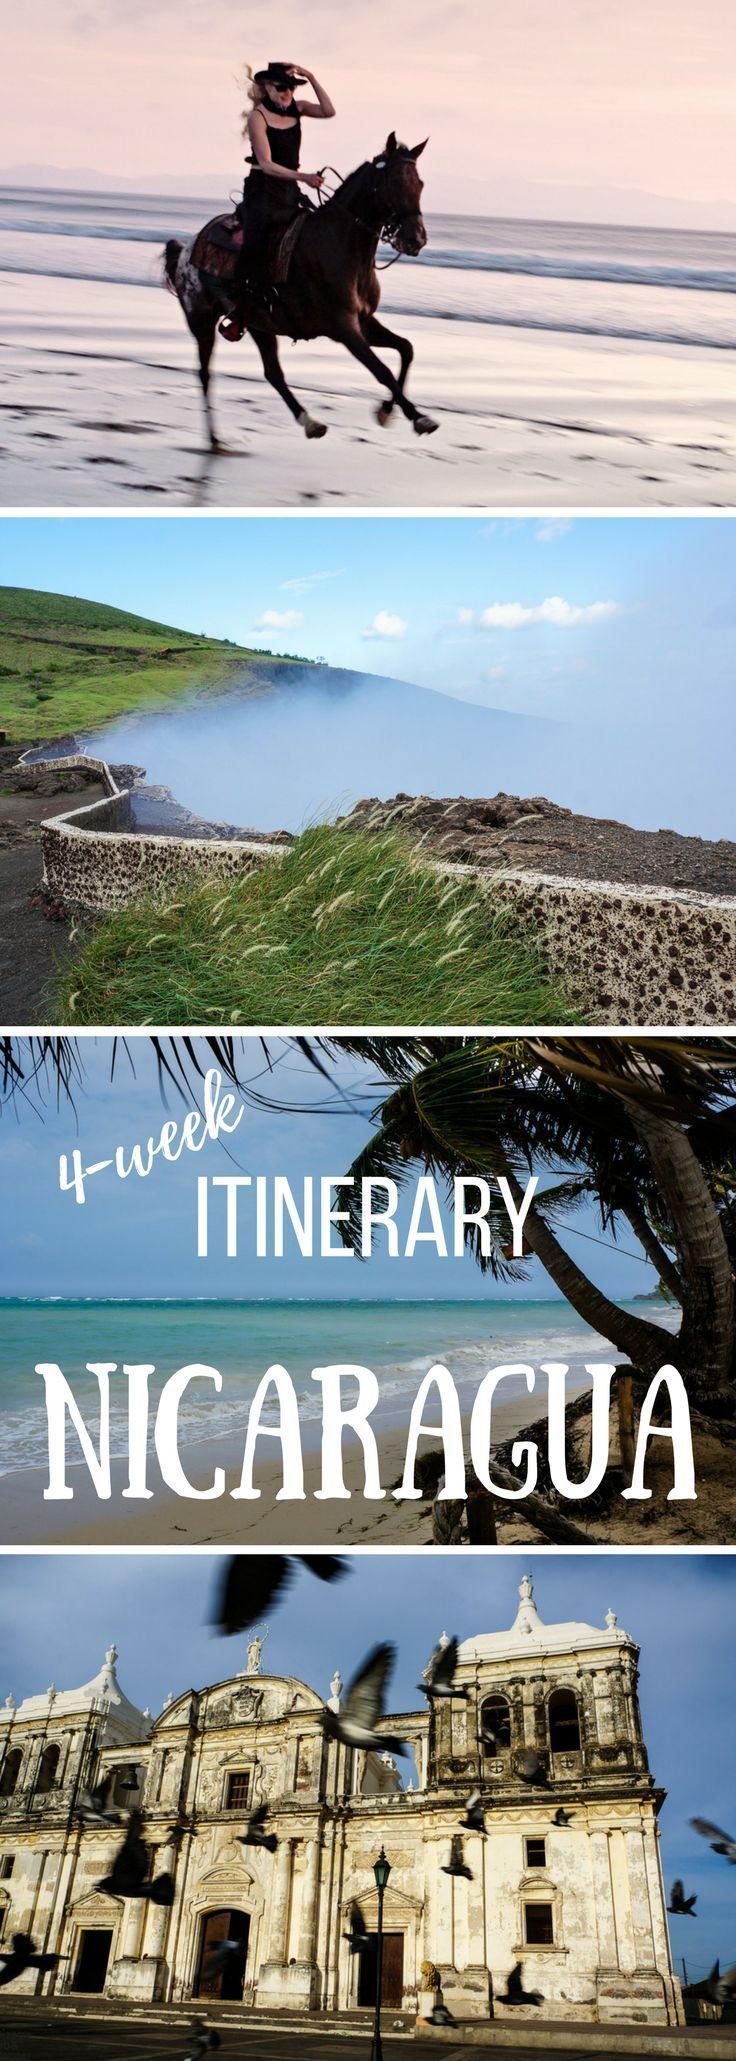 Smoky volcanoes, pristine beaches, stunning colonial cities, and unexplored jungles – Nicaragua steals your heart! Our one-month itinerary covers the main highlights with some bizarre detours: Corn Islands, Rio Indio and Indio Maíz Biological Reserve, the island of Ometepe along with the city of Granada, and the diversified coffee and cigar region of Northern highlands.